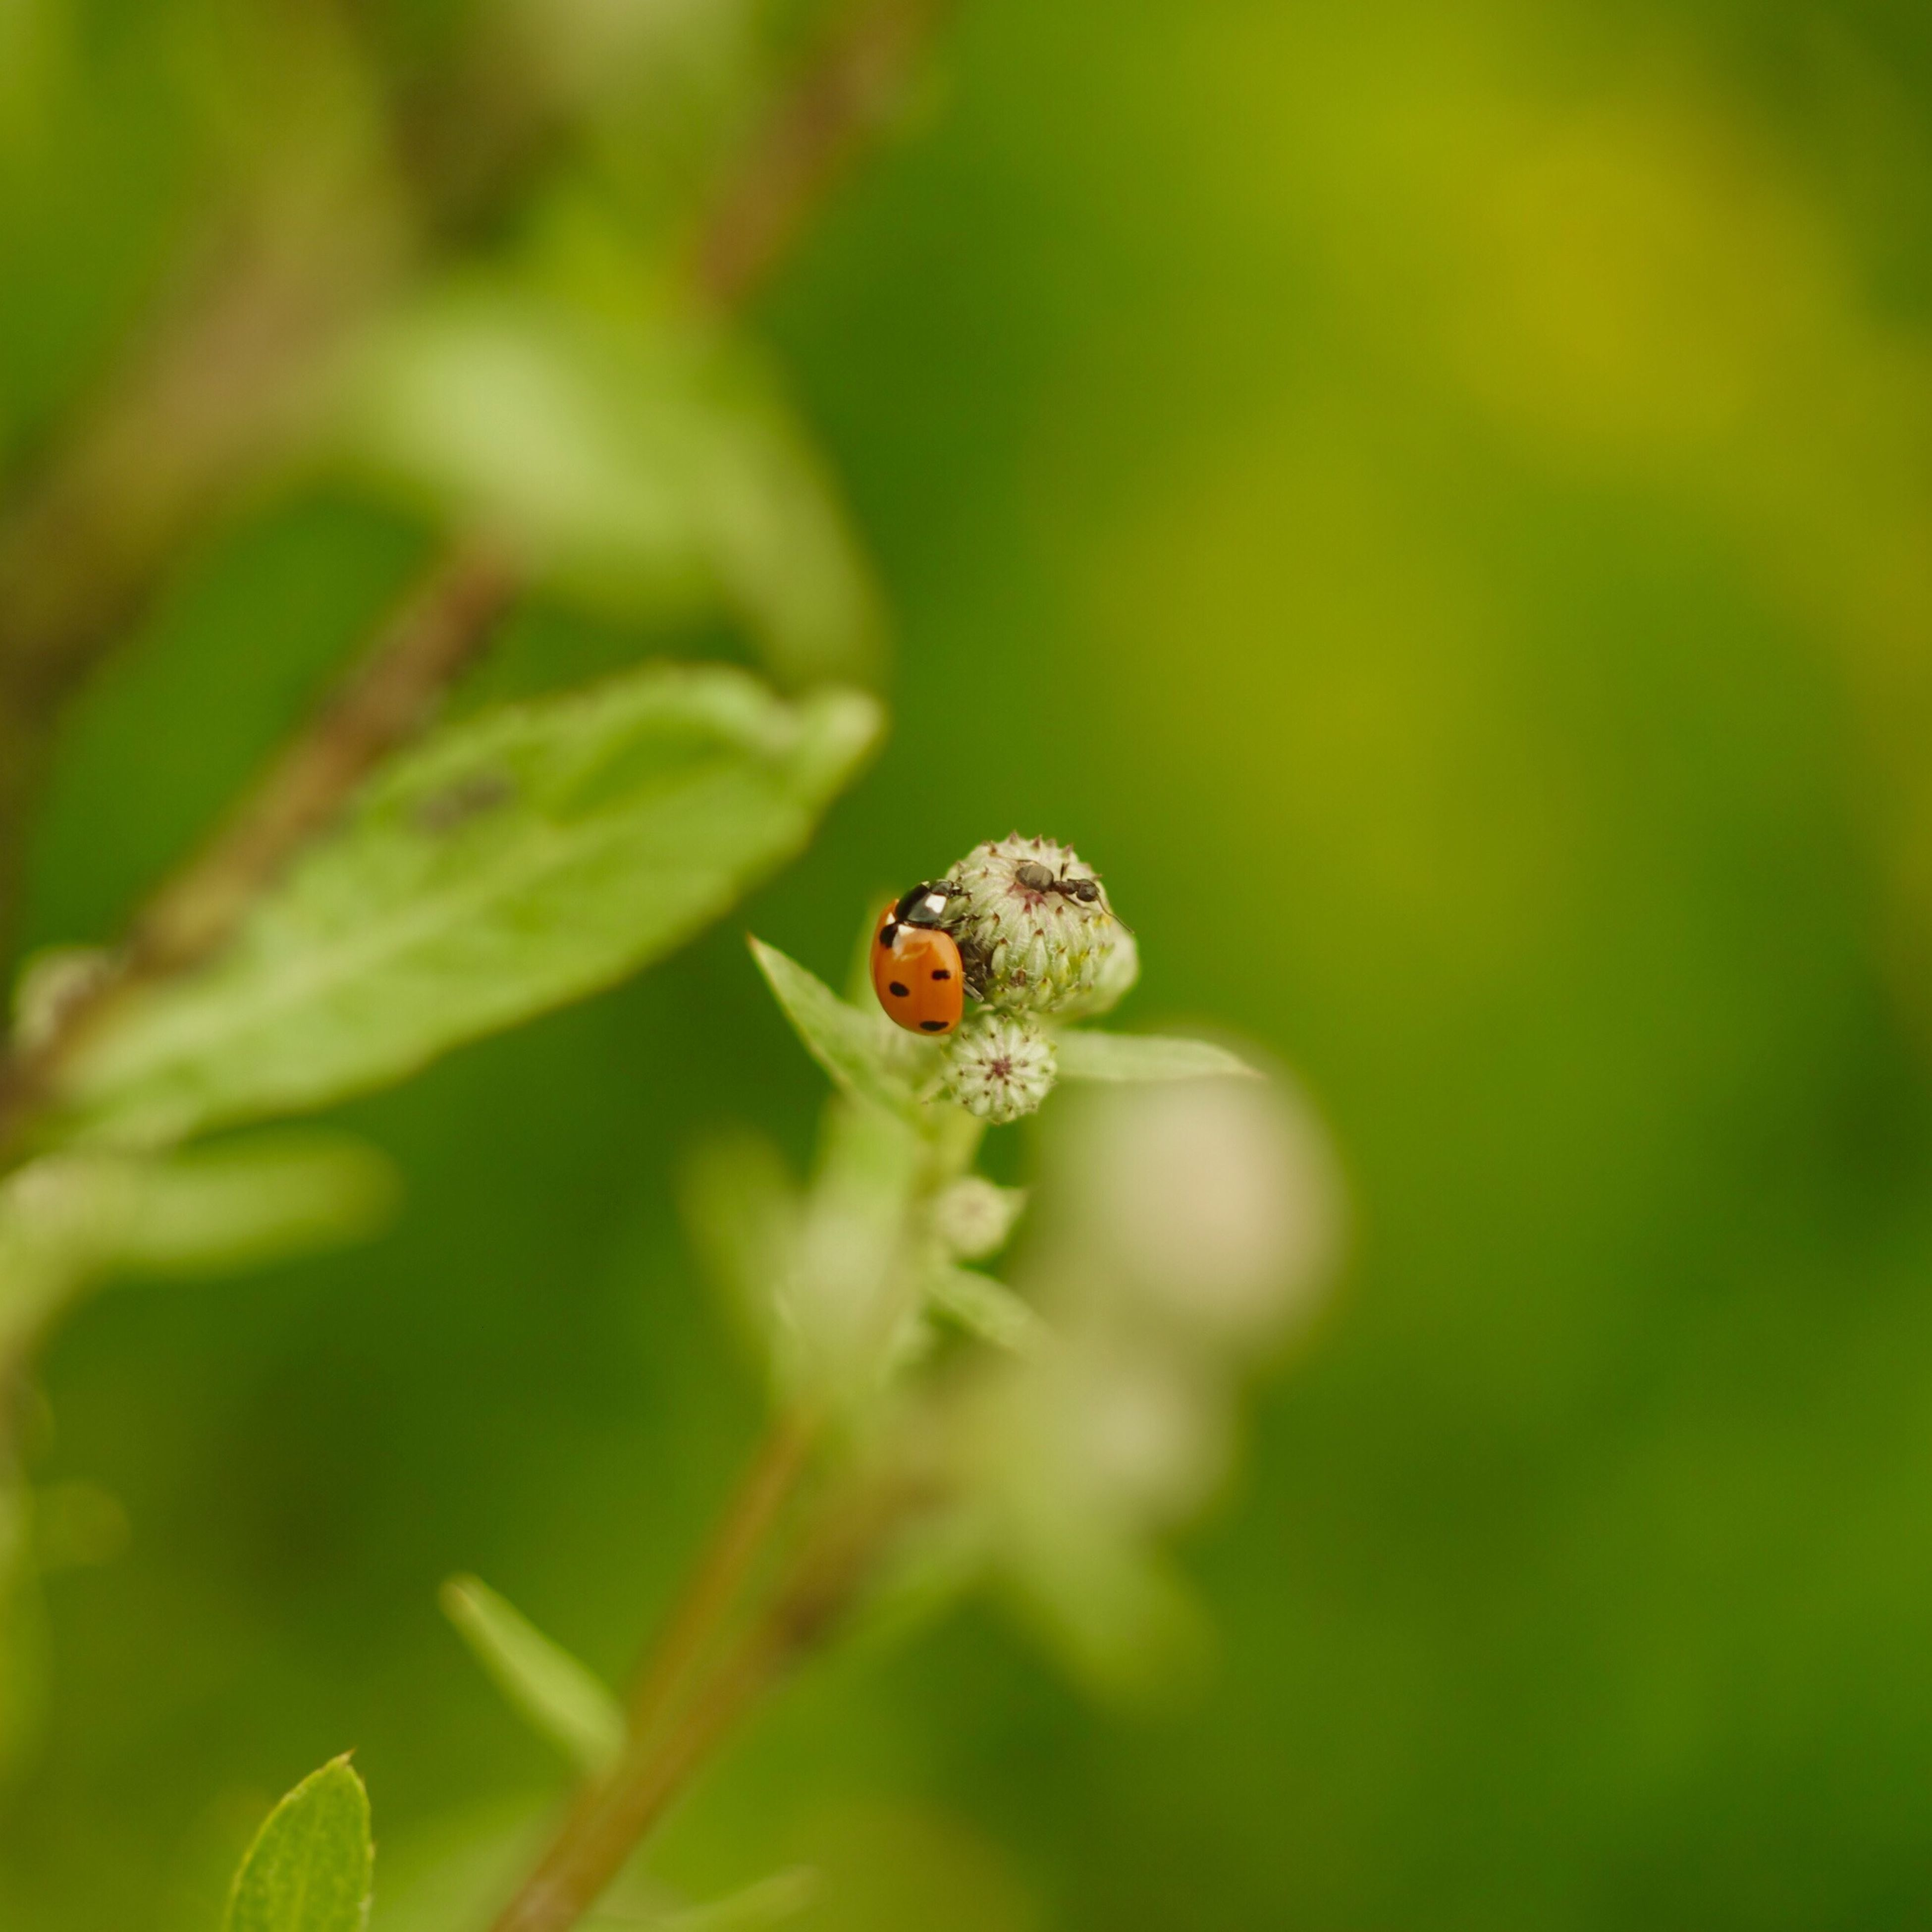 animal themes, animals in the wild, one animal, insect, wildlife, ladybug, close-up, selective focus, nature, plant, zoology, new life, fragility, growth, focus on foreground, day, freshness, green color, outdoors, green, bug, beauty in nature, red, tiny, springtime, no people, petal